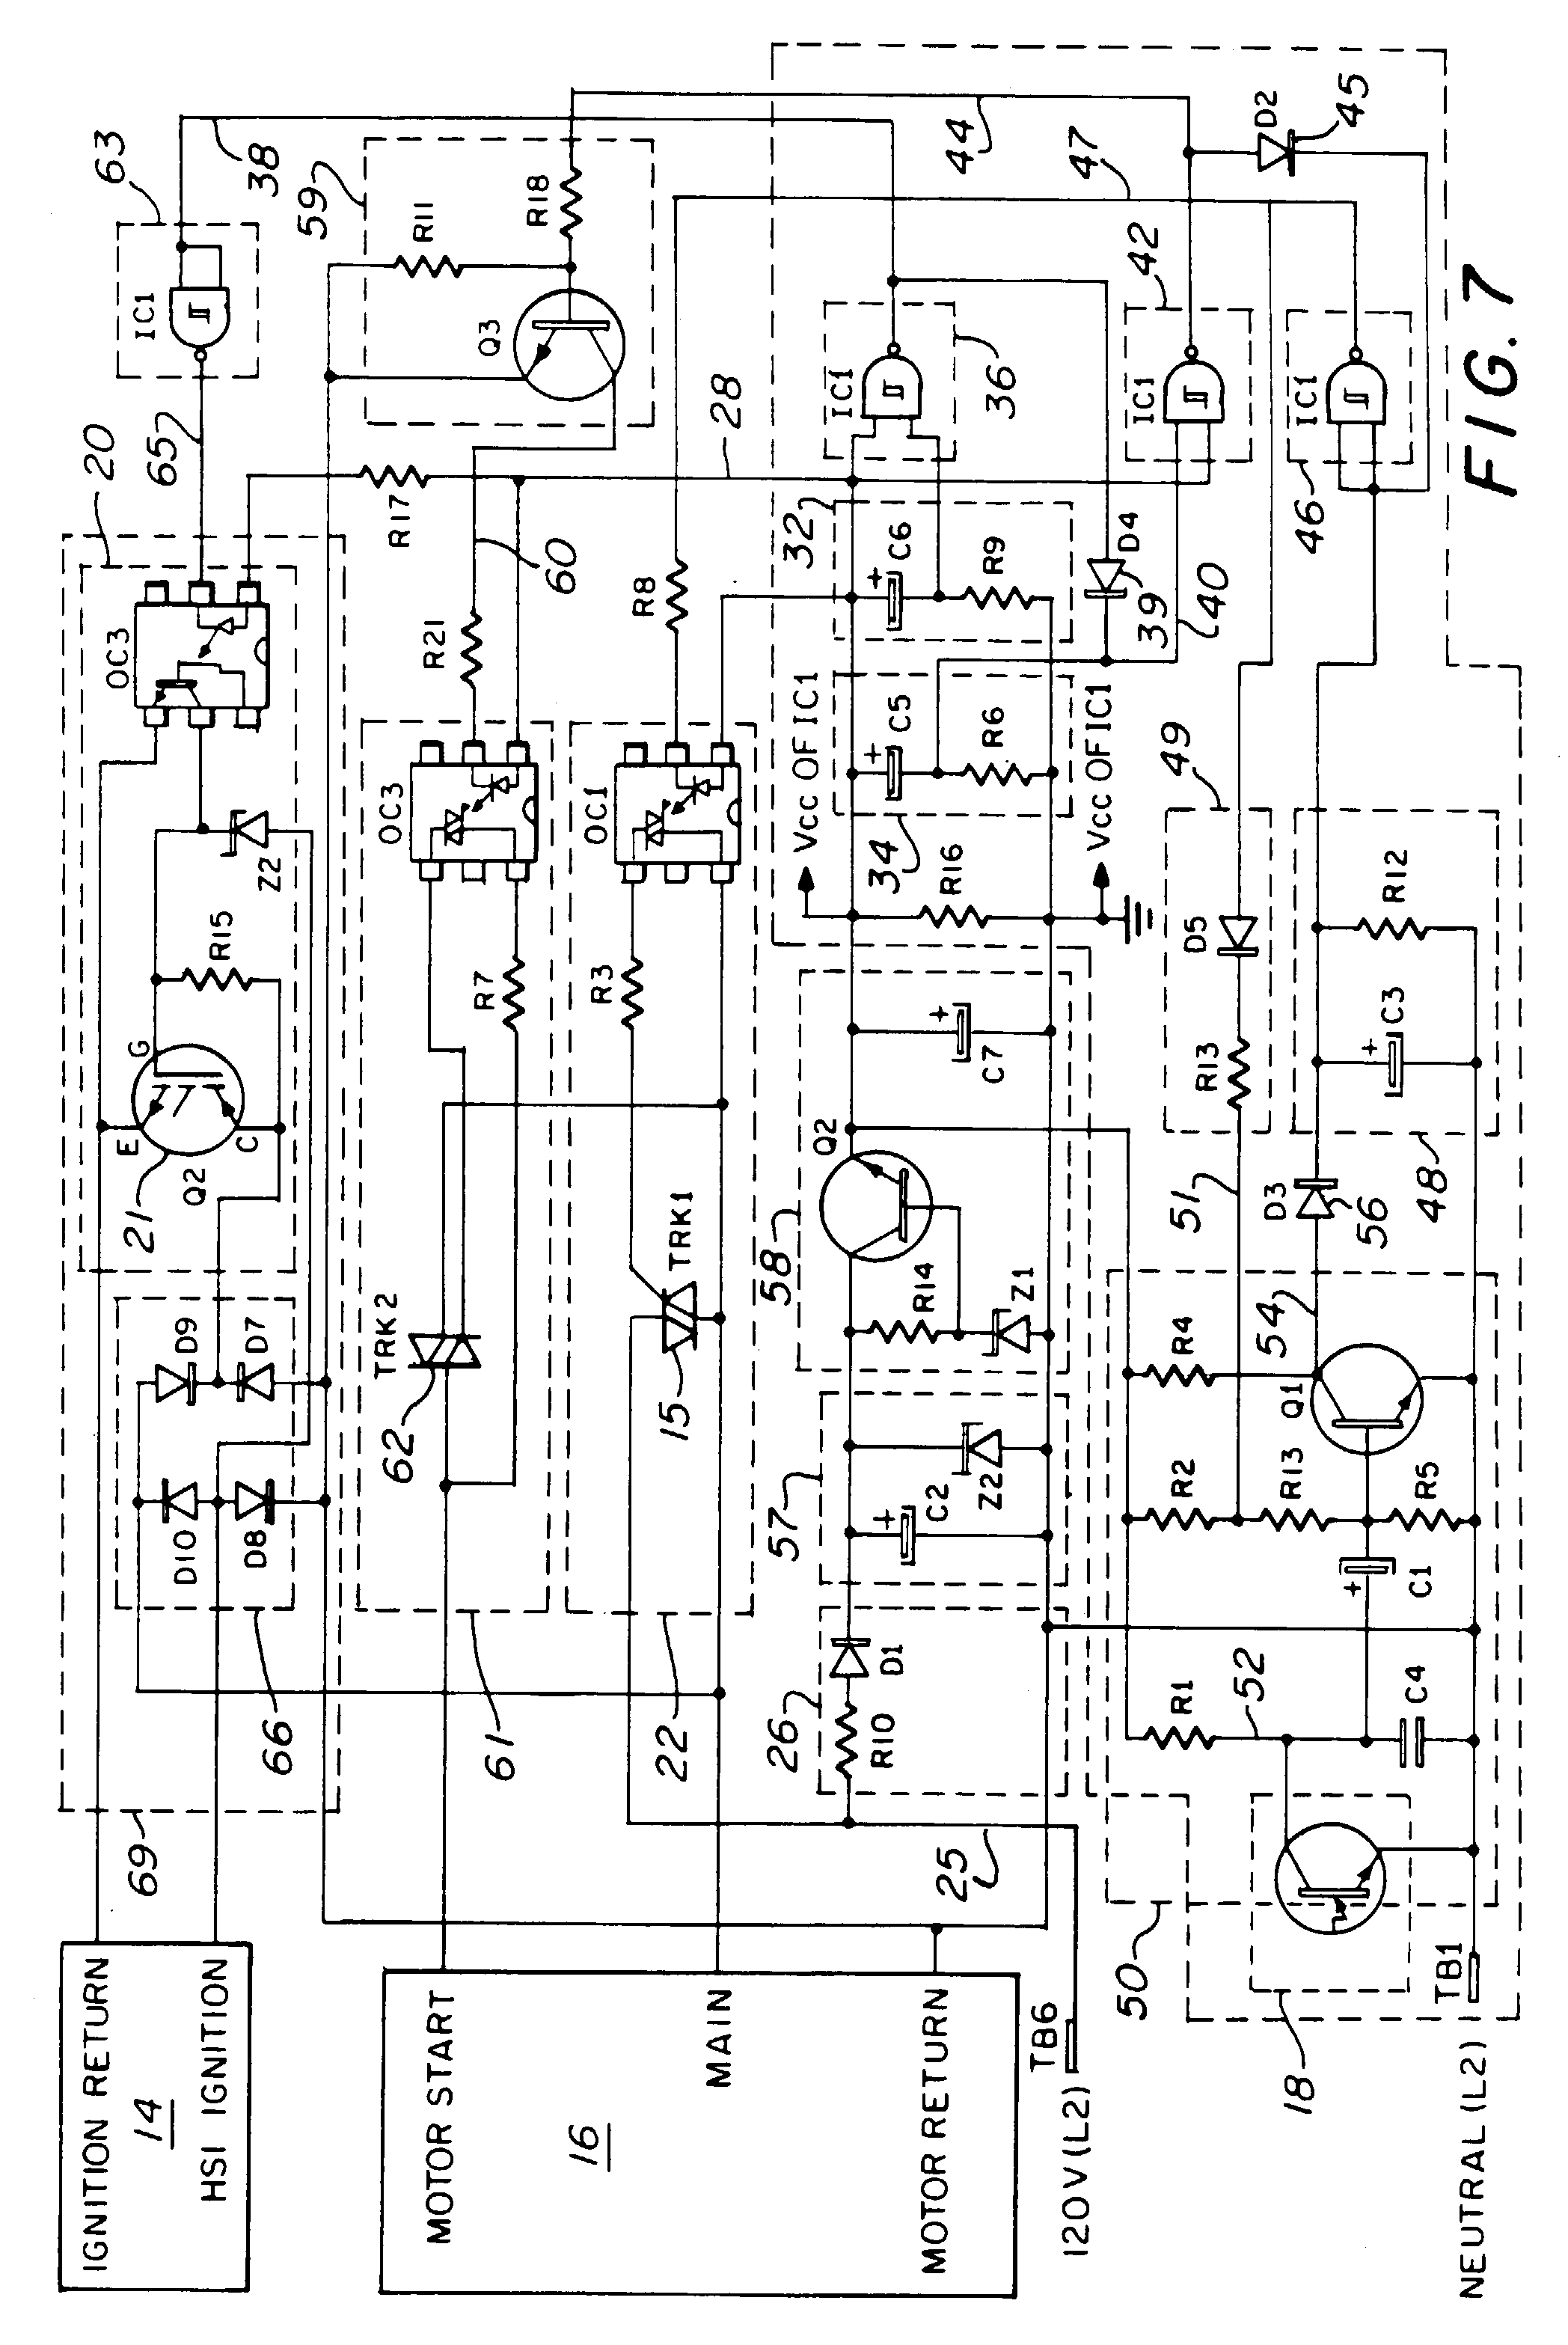 00460001 patent ep1033535a2 hot surface ignition controller for fuel oil power flame burner wiring schematic at fashall.co